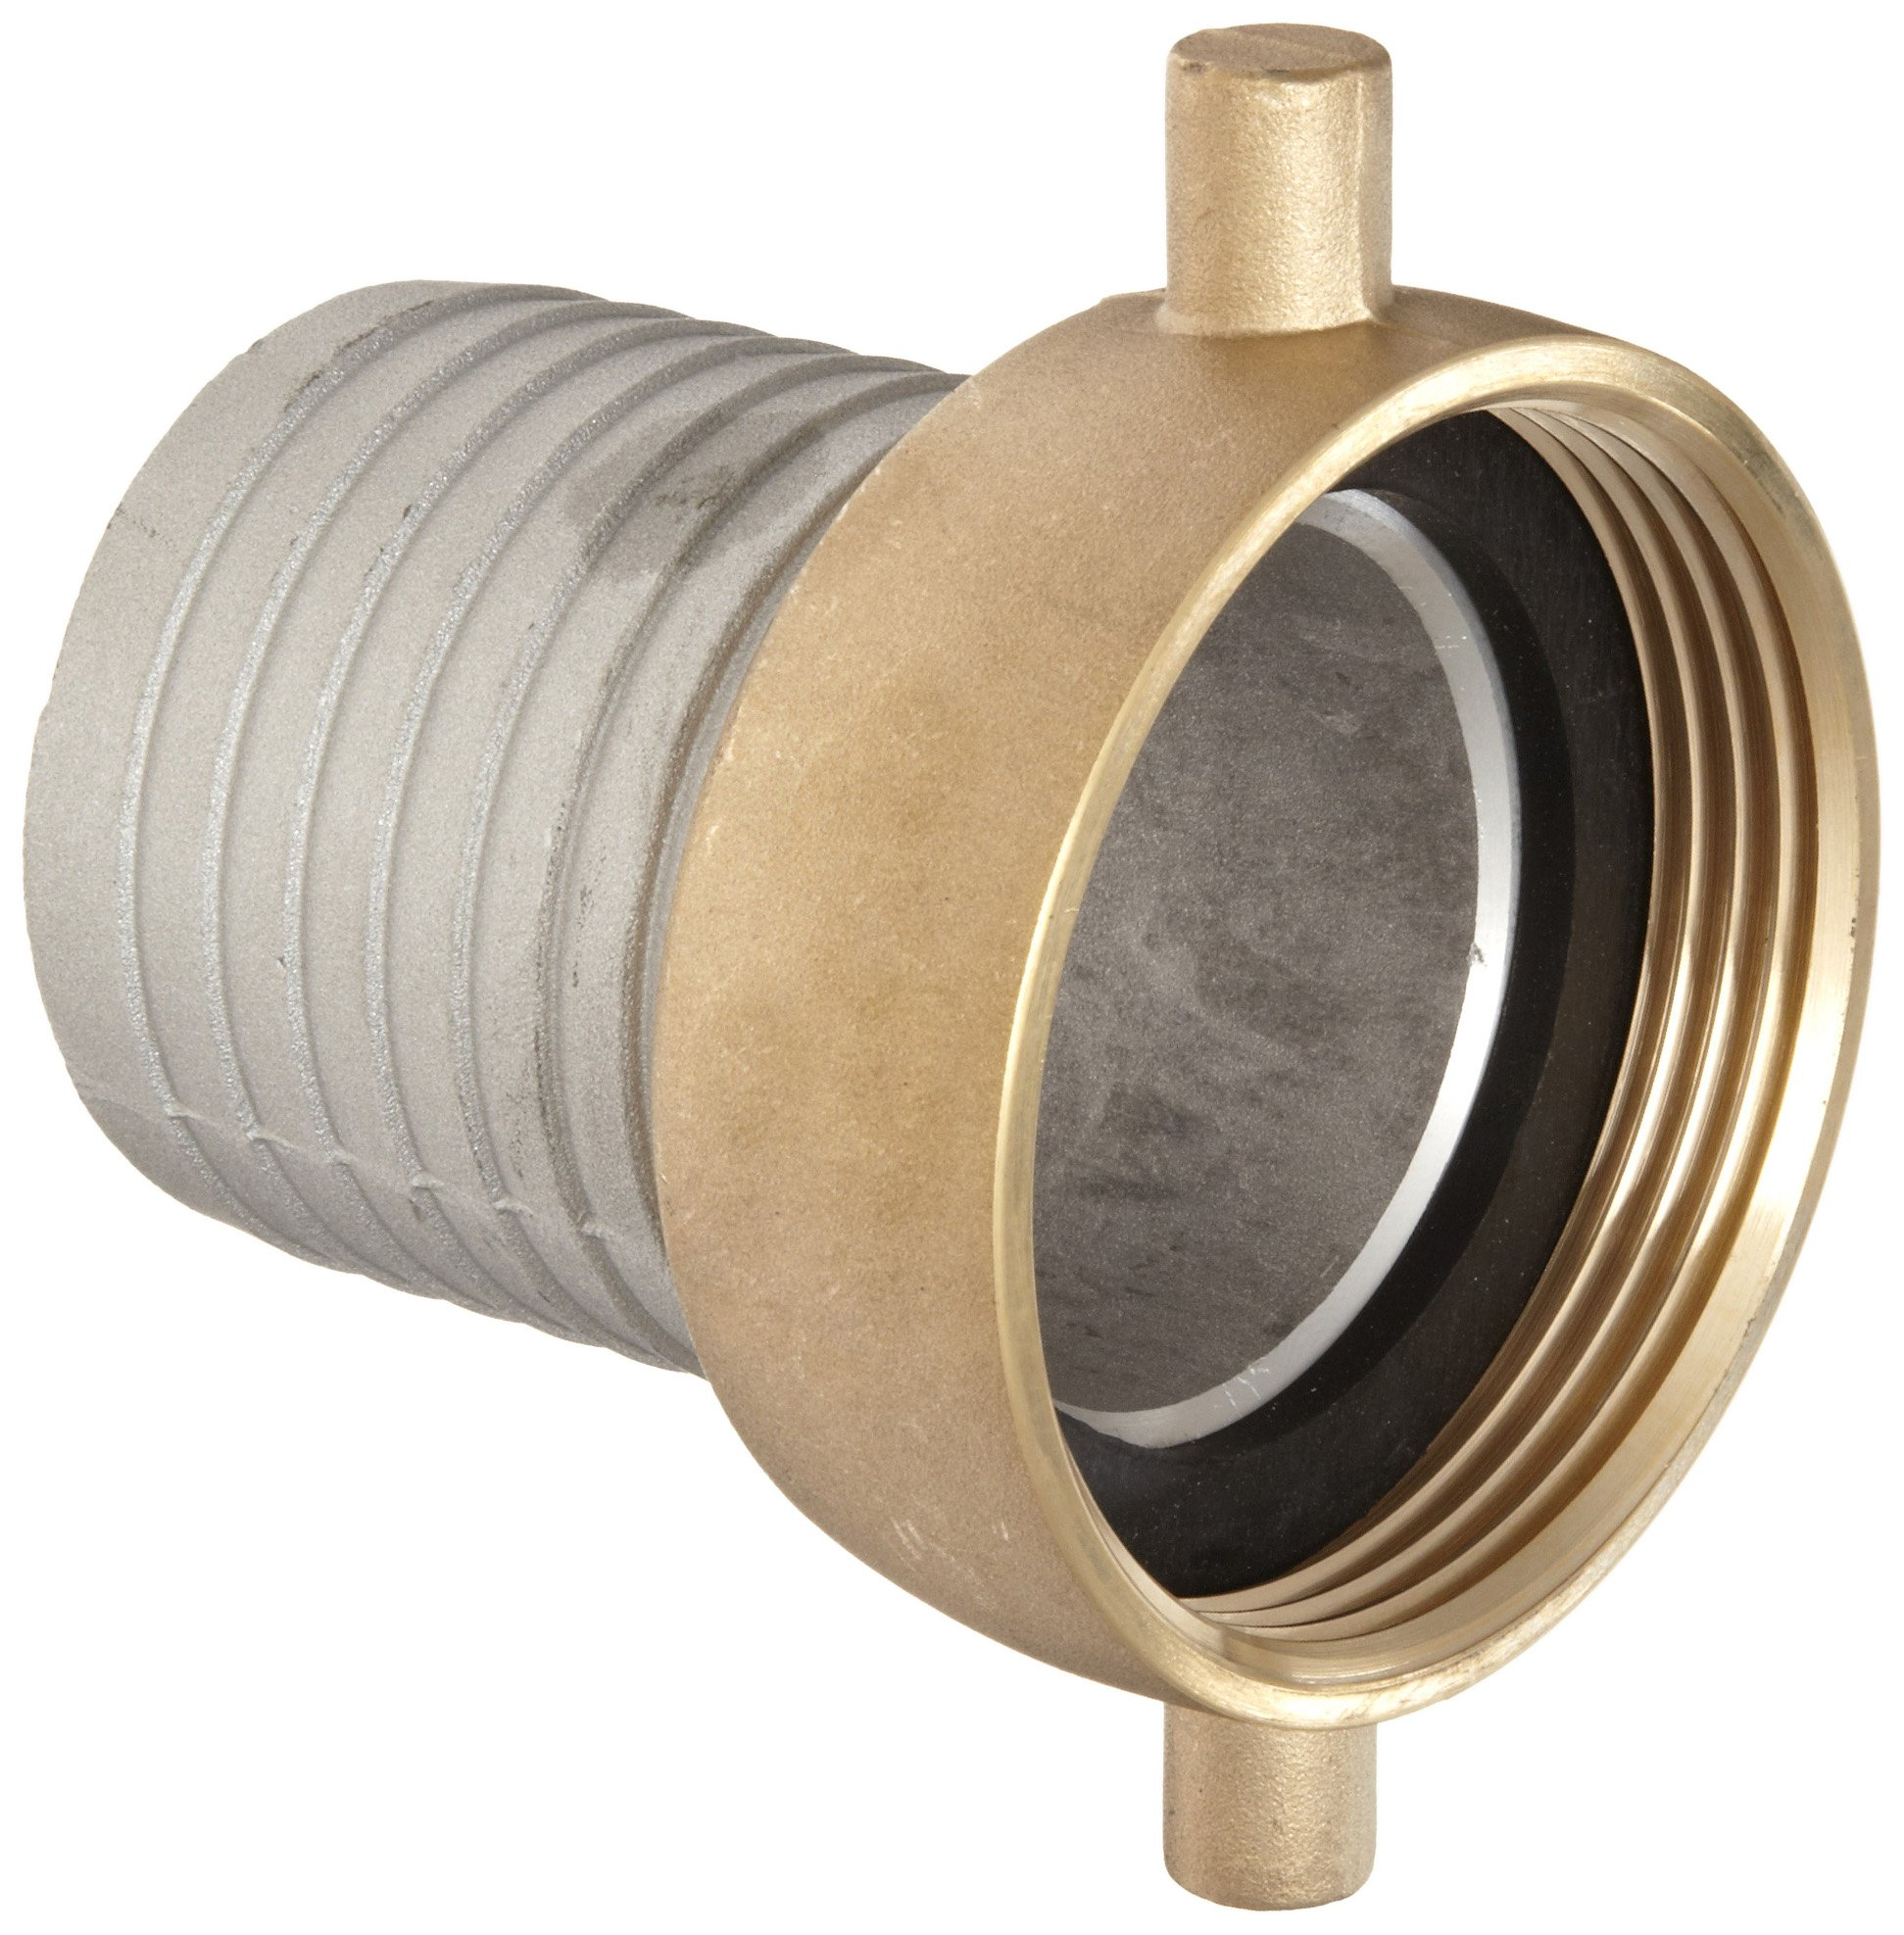 Dixon FAB250N Aluminum Hose Fitting, King Short Shank Suction Coupling with Brass Nut, 2-1/2'' NST Female x 2-1/2'' Hose ID Barbed